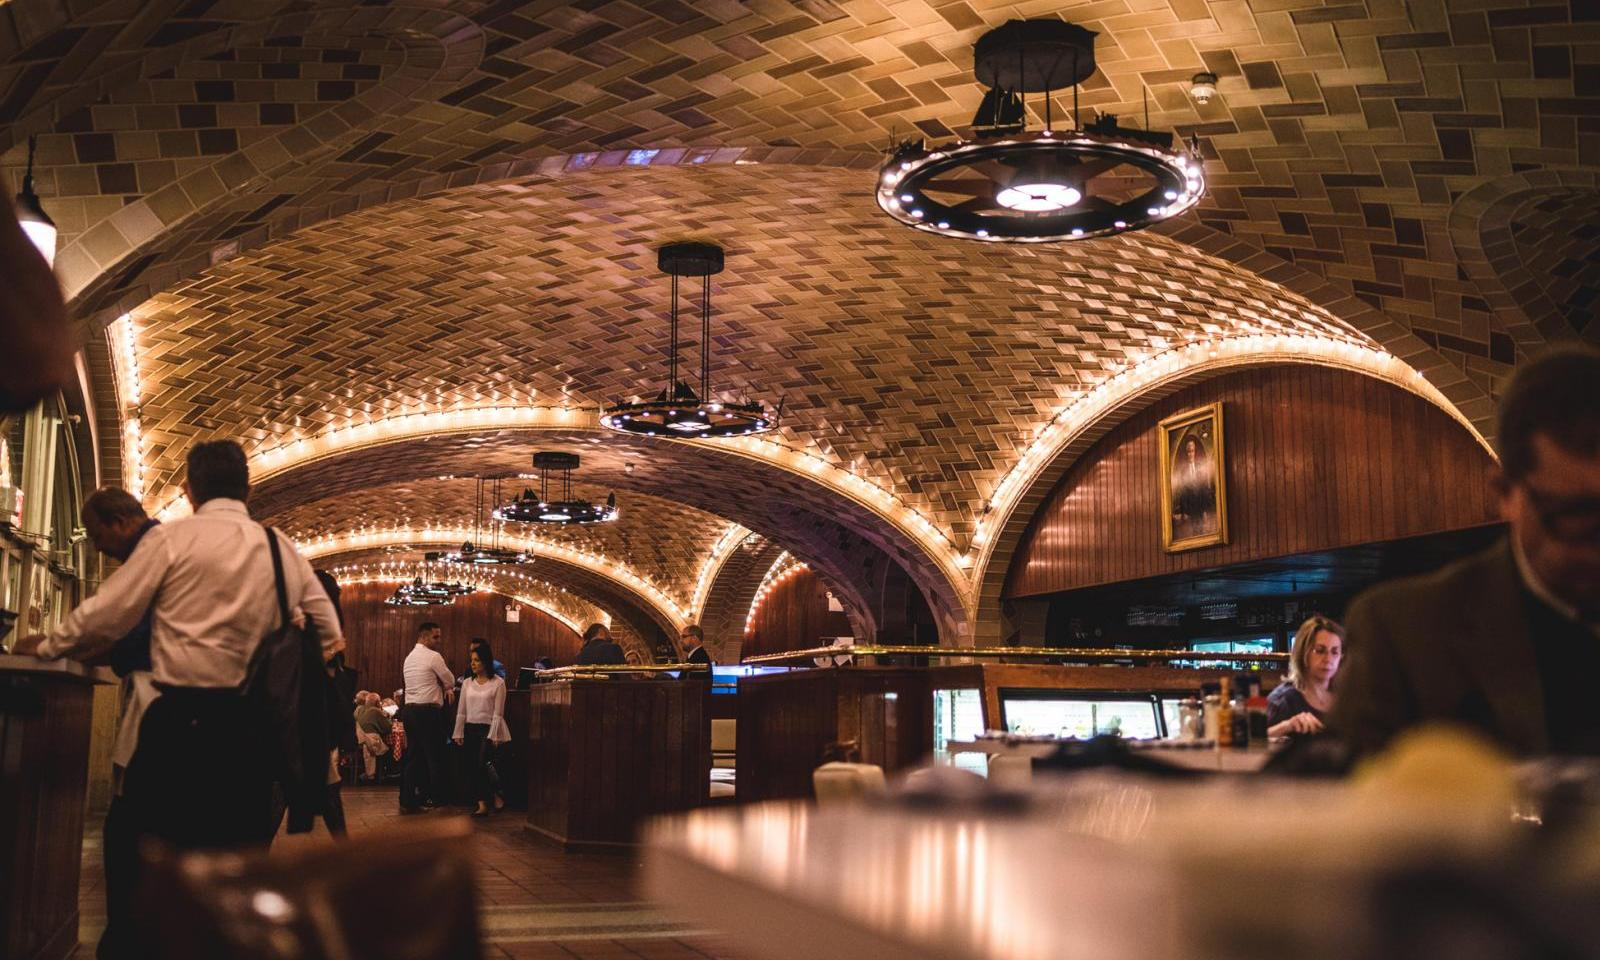 Grand Central Oyster Bar NYC - But is it Really That Grand?